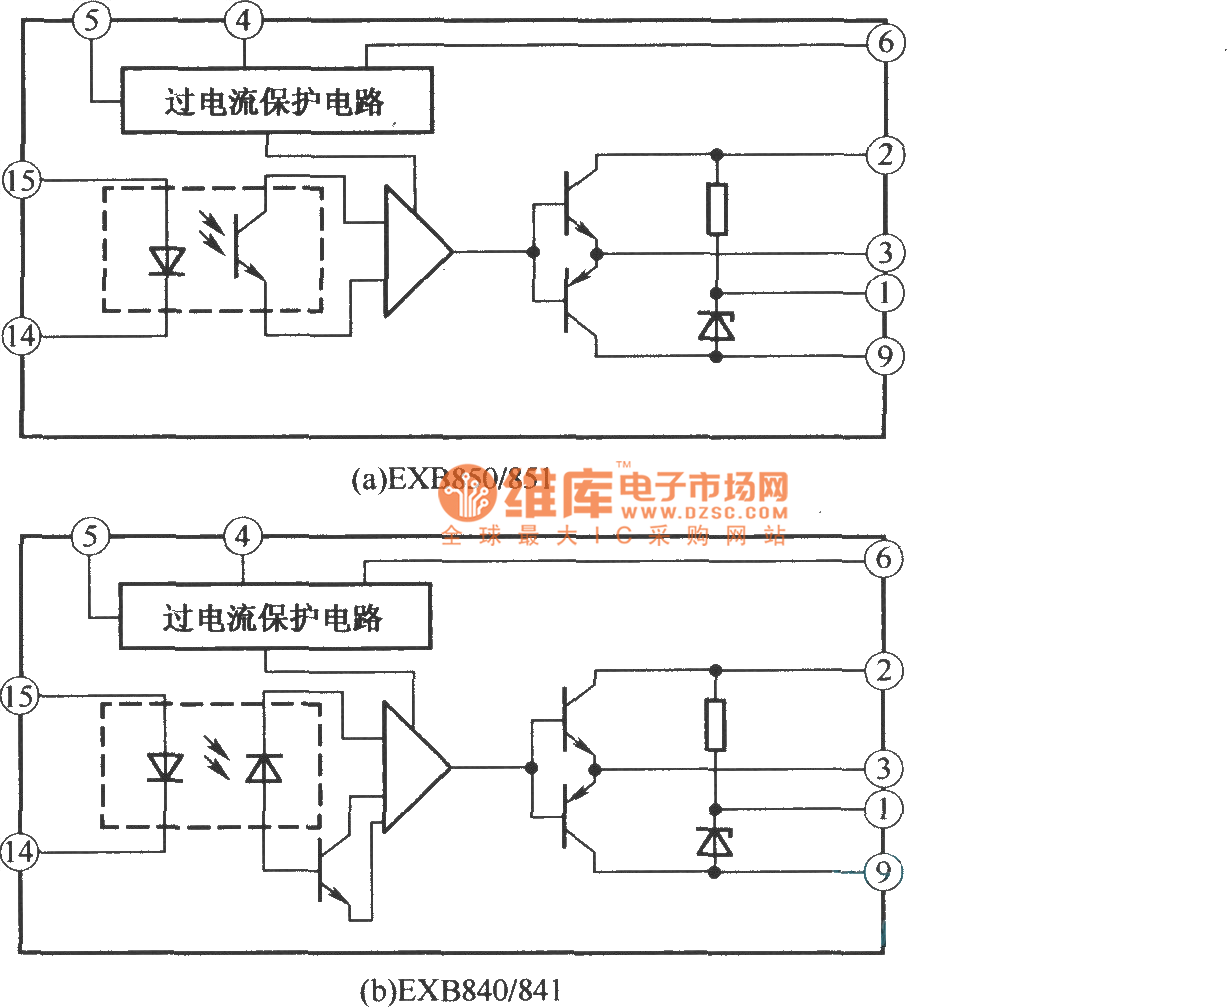 hight resolution of download image function block diagram pc android iphone and ipad